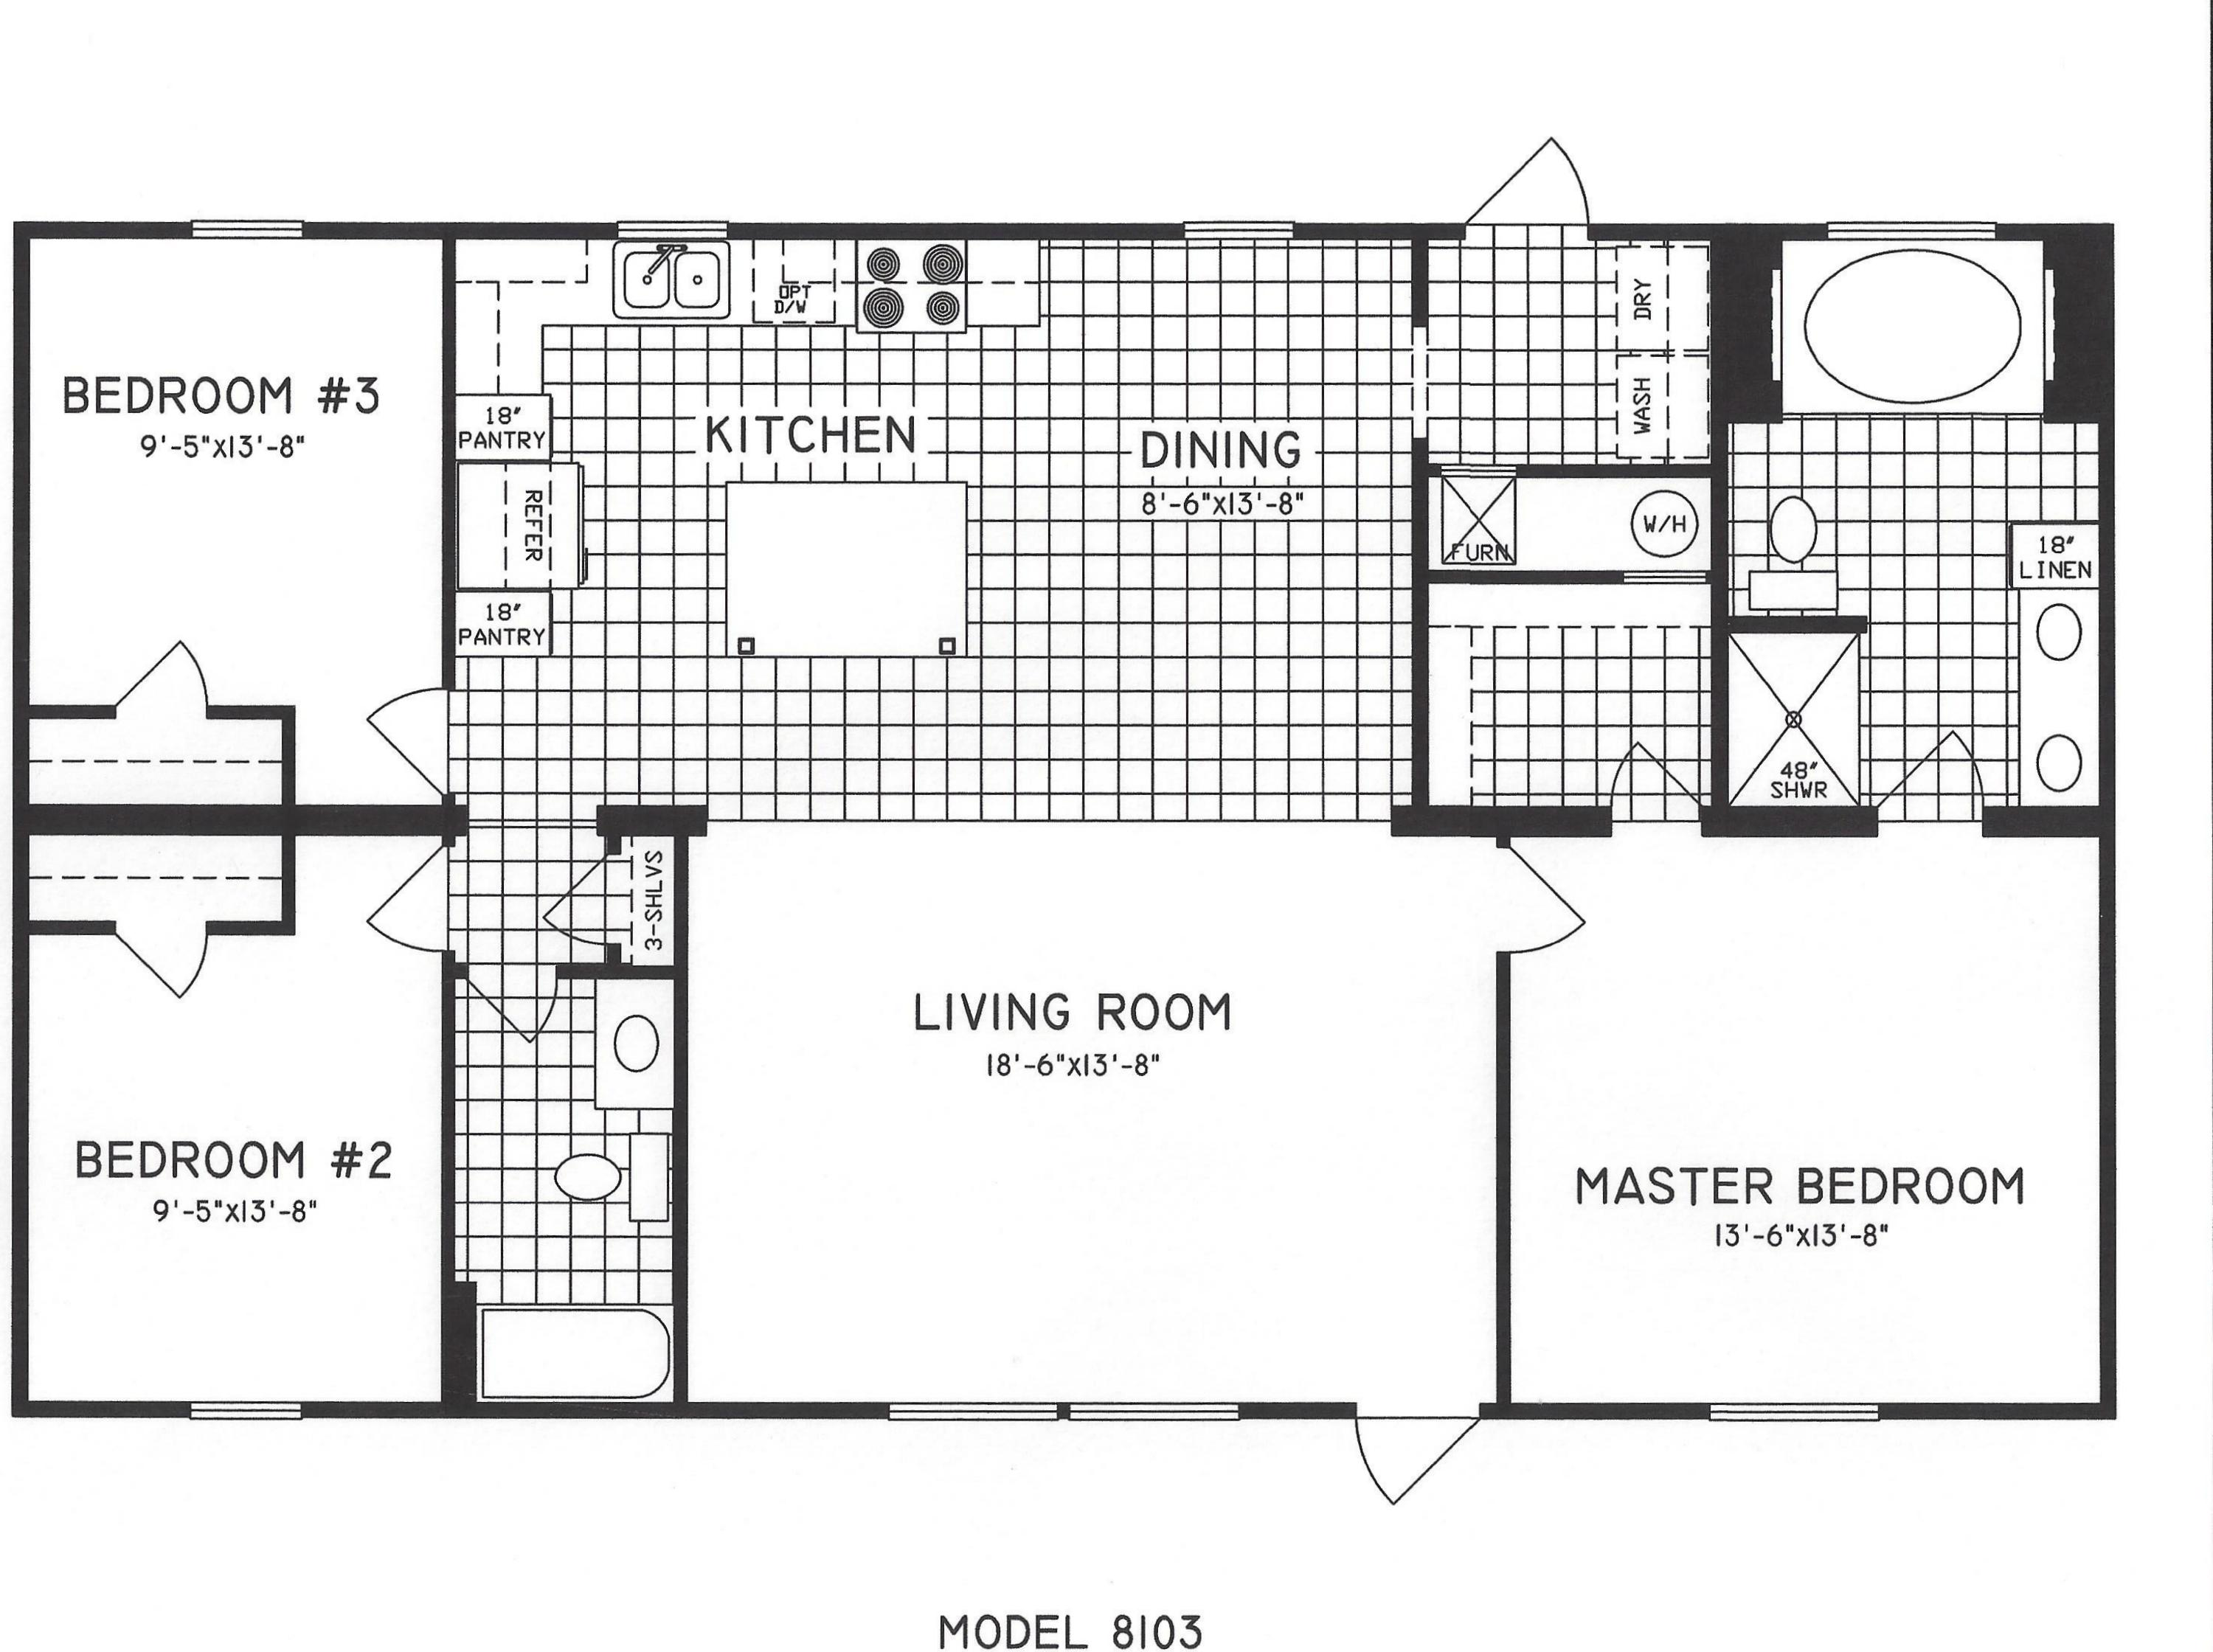 3 bedroom floor plan c 8103 hawks homes manufactured 3 bedroom modular home floor plans